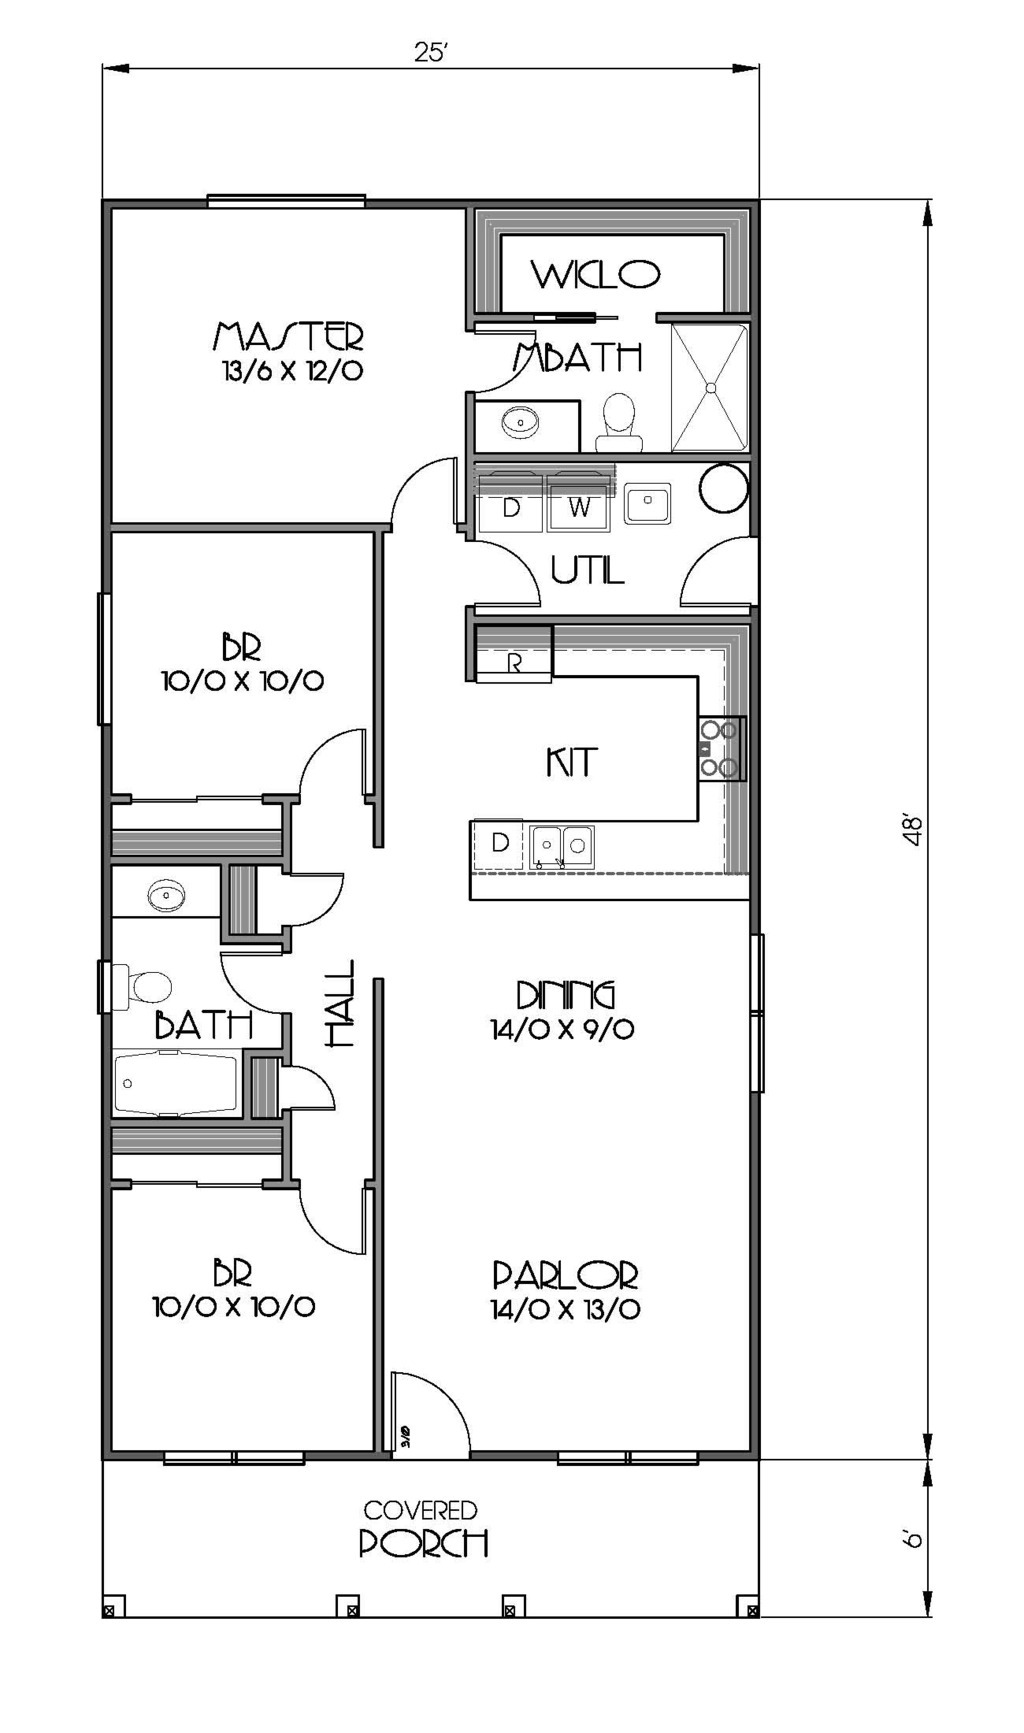 1200 square feet 3 bedrooms 2 bathroom bungalow house plans 0 garage